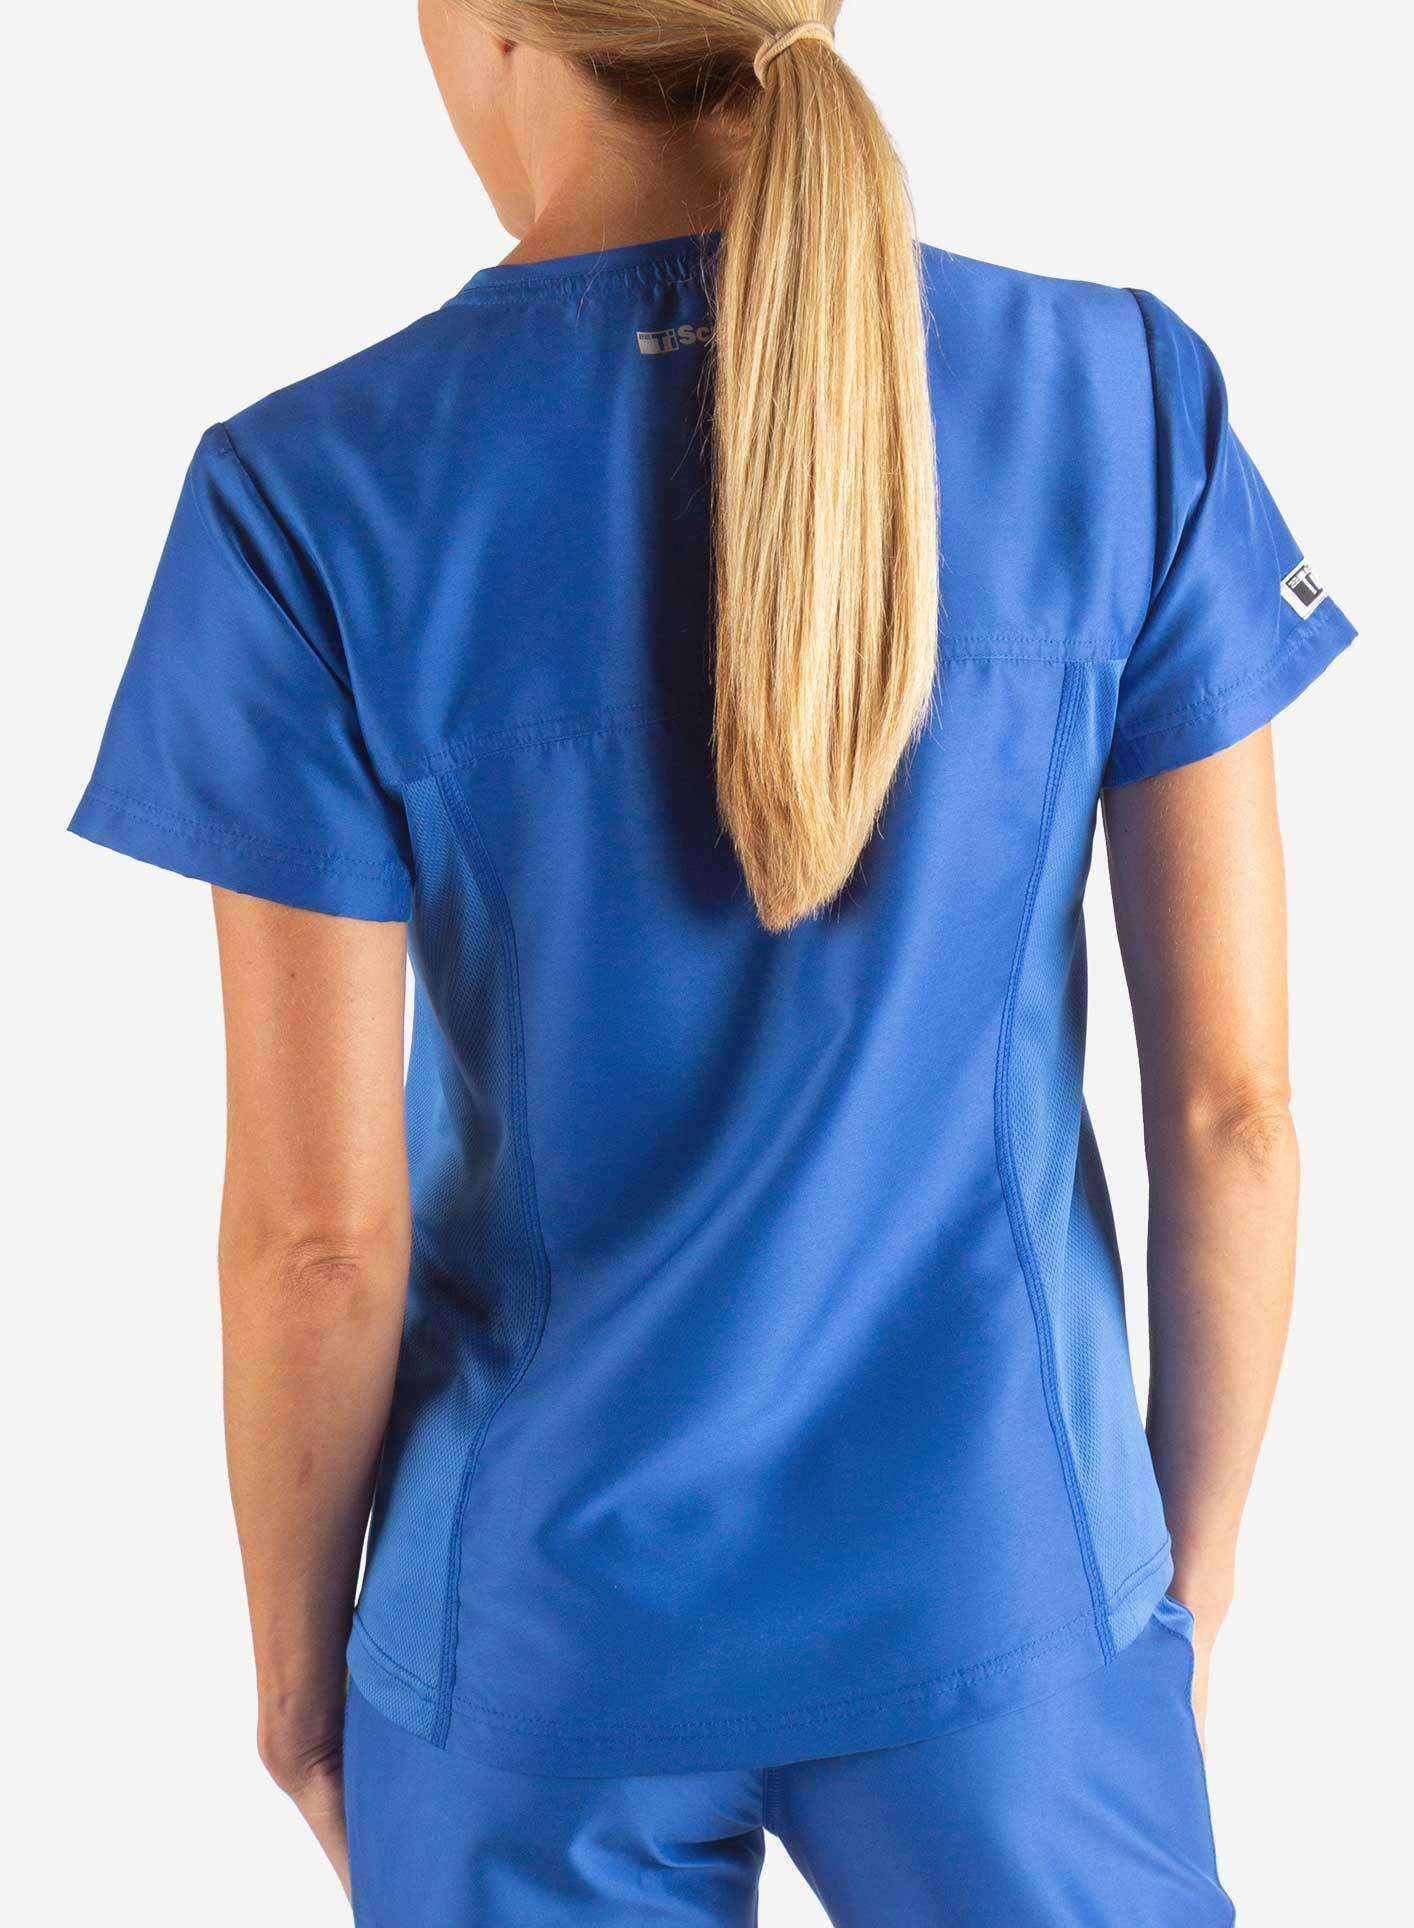 womens Elements short sleeve hidden pocket scrub top Royal Blue back